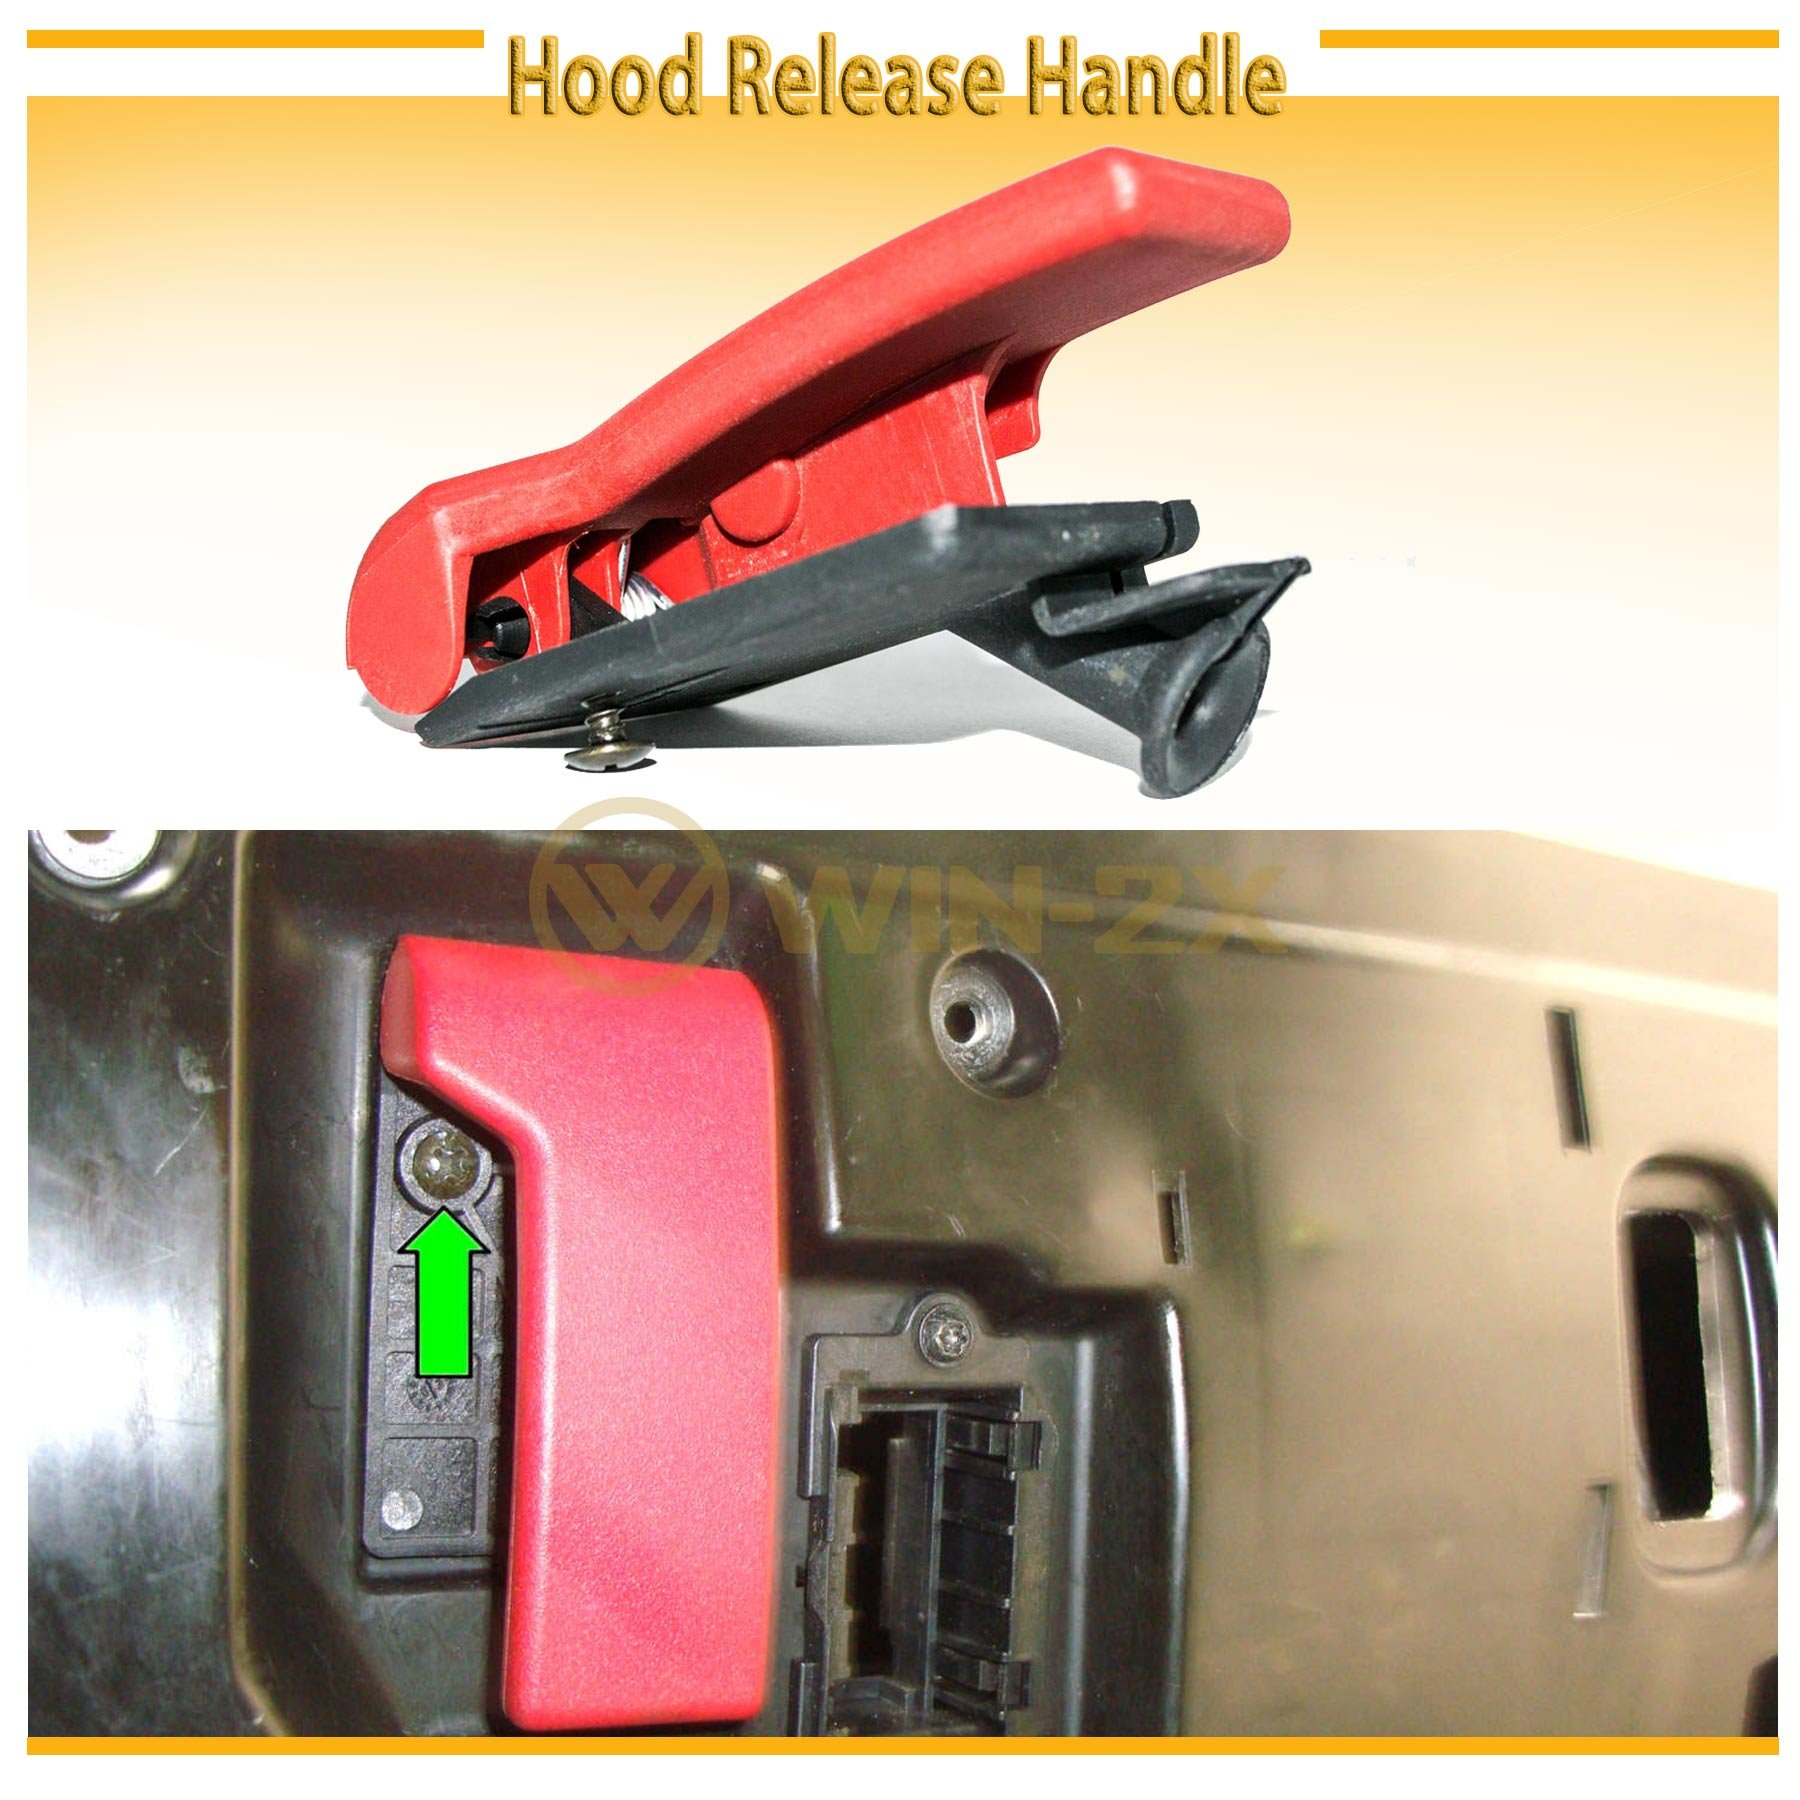 WIN-2X New 1pc Front Interior Hood Latch Release Pull Handle Lever Replacement Fit Mercedez-Benz C/E/S/CLK/ML/GL/R/S/SLK/CL/CLS/SLS-Class